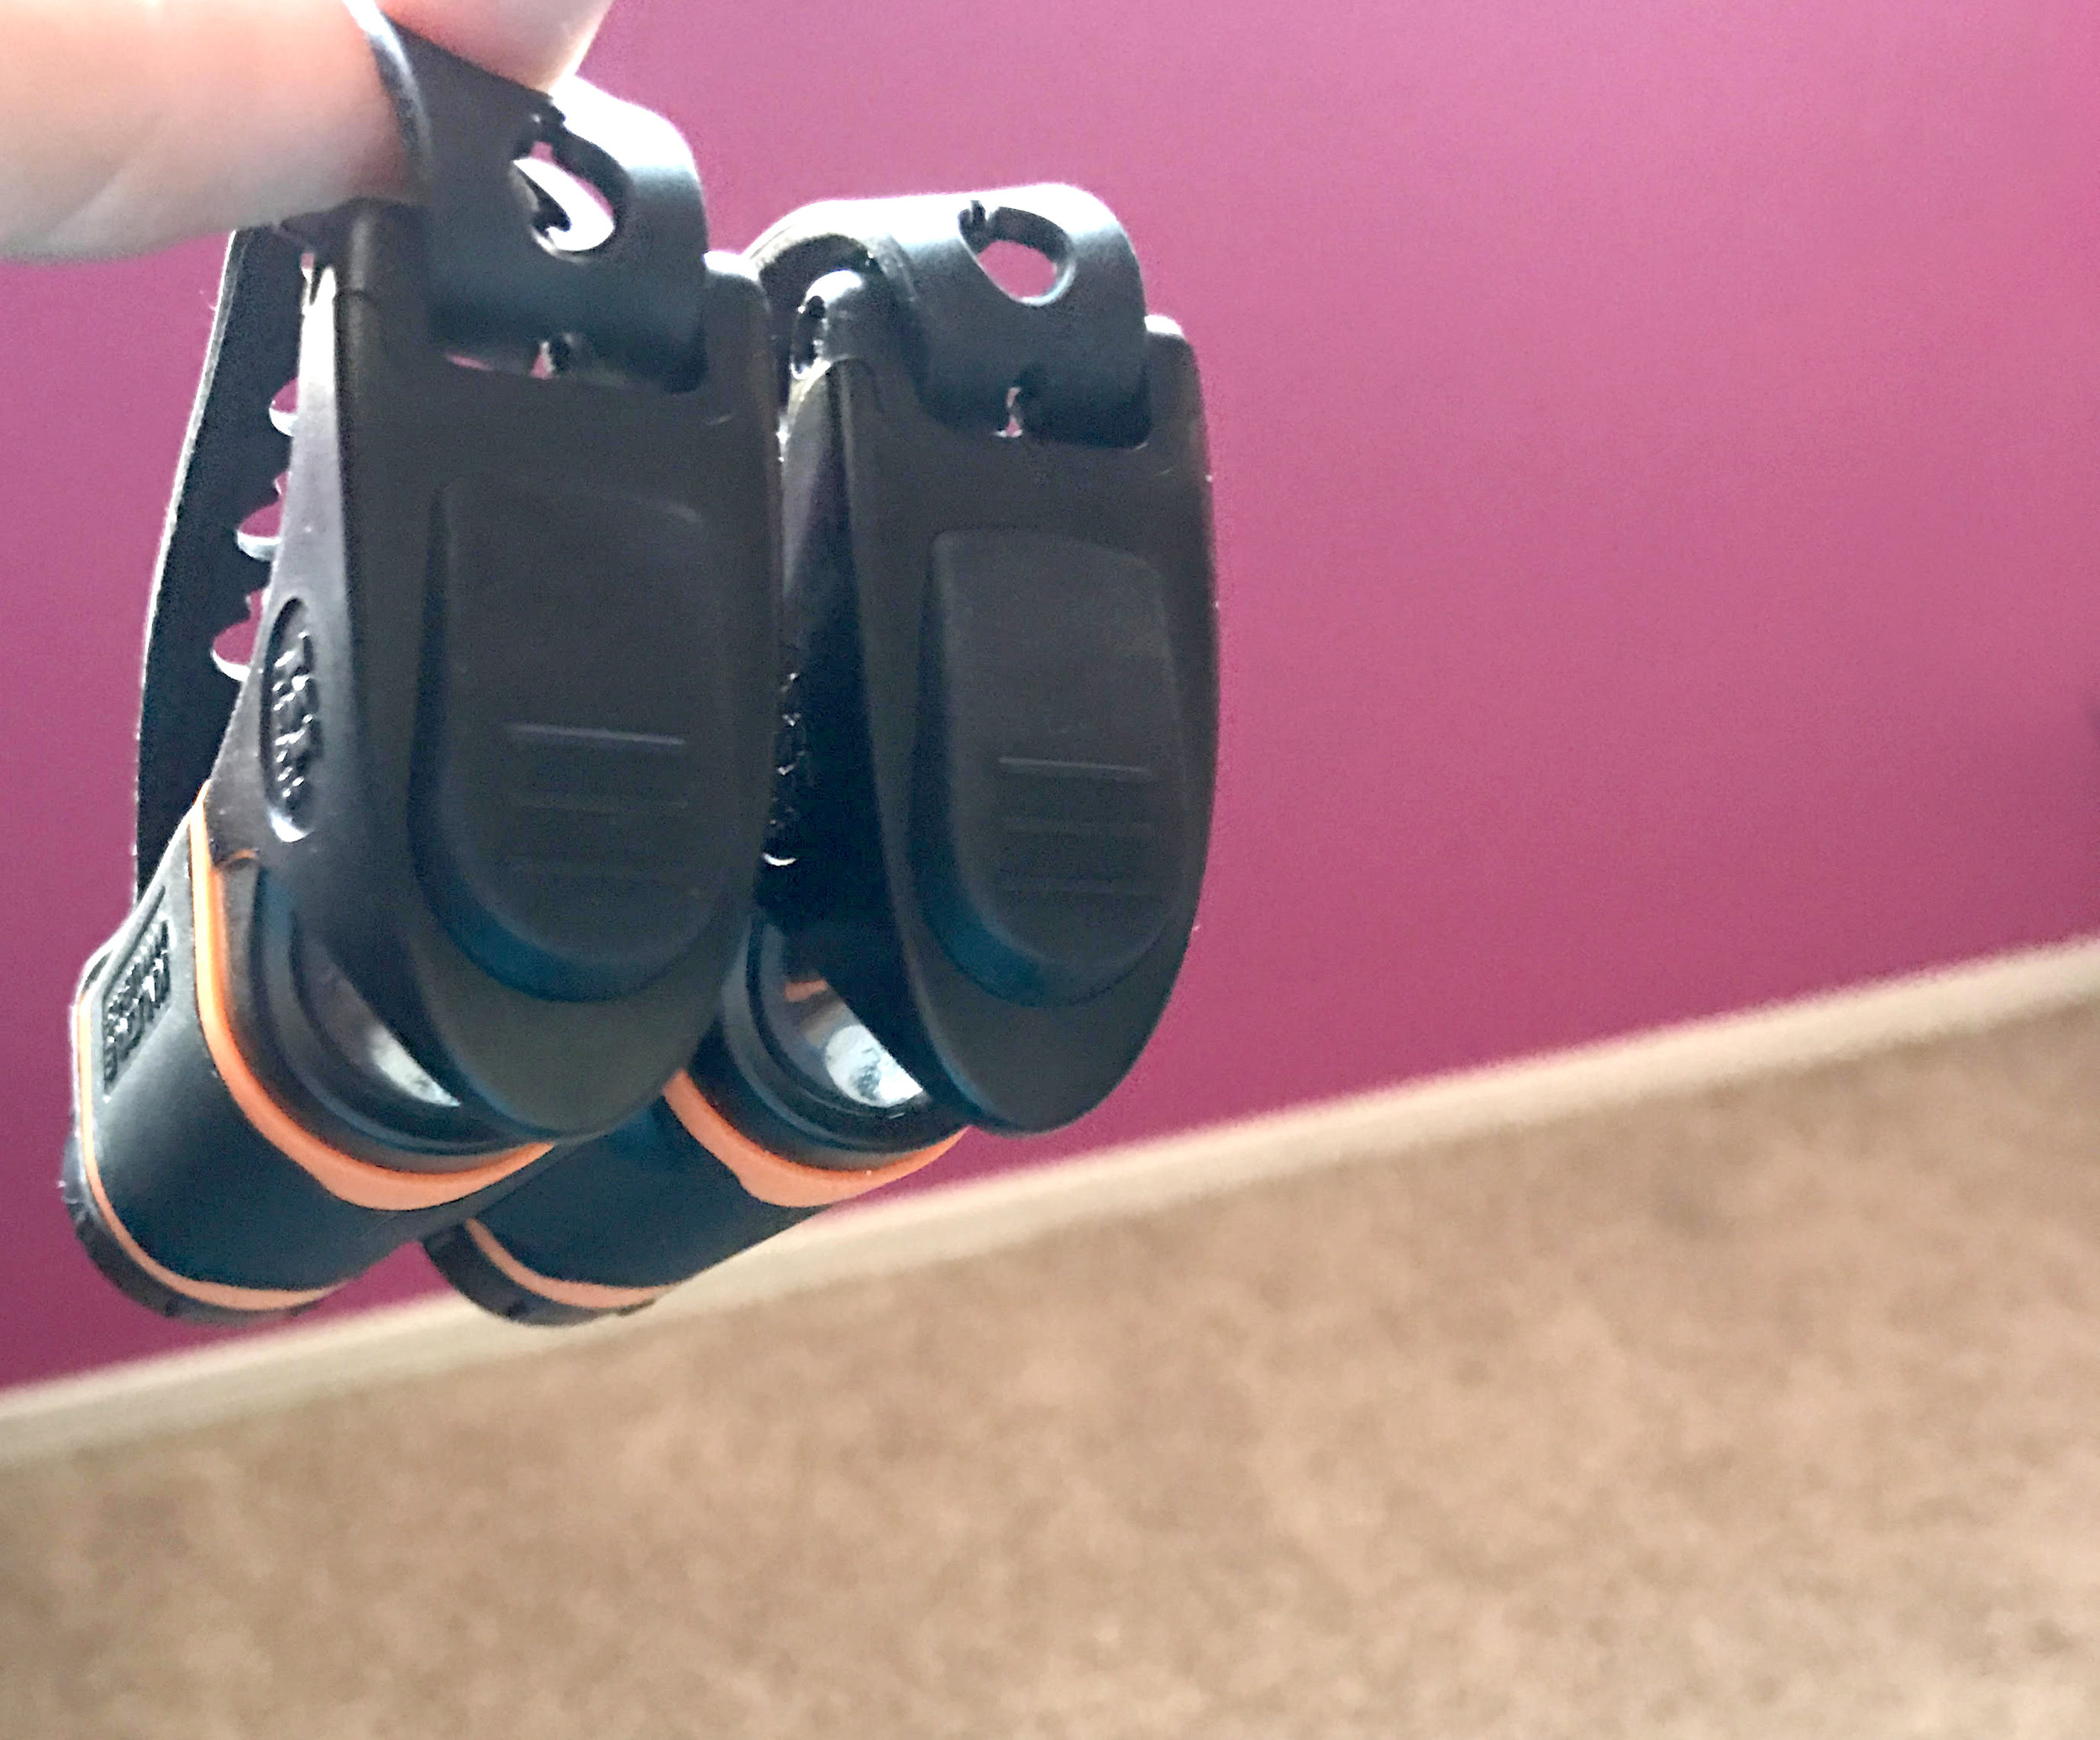 Another cool feature? These bad boys are MAGNETIC!!! You can't lose them, because they stick together! Just like me and my running shoes, these knuckle lights are inseparable. Brilliance. Genius. Amazeballs!